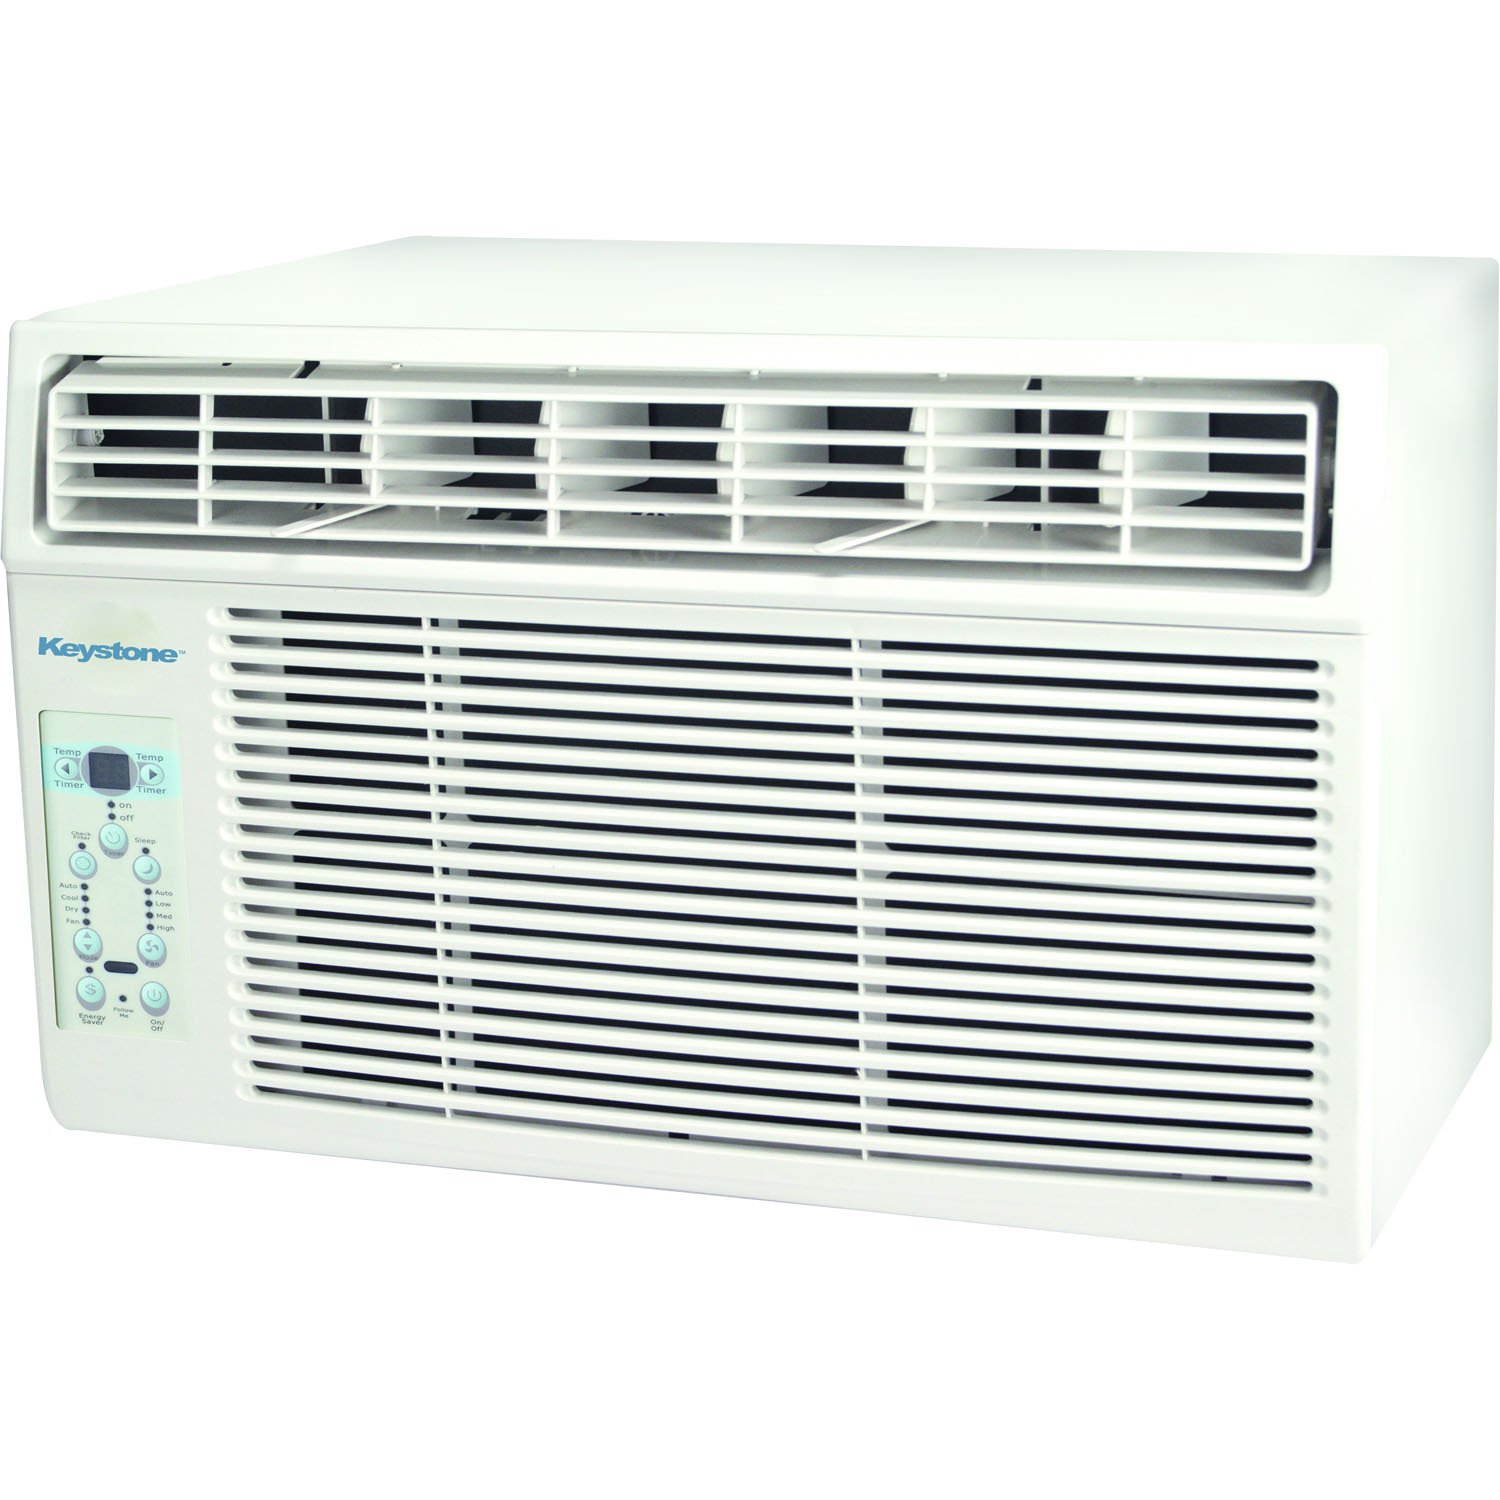 Keystone KSTAW10B 10,000 BTU 115V Window-Mounted Air Conditioner with